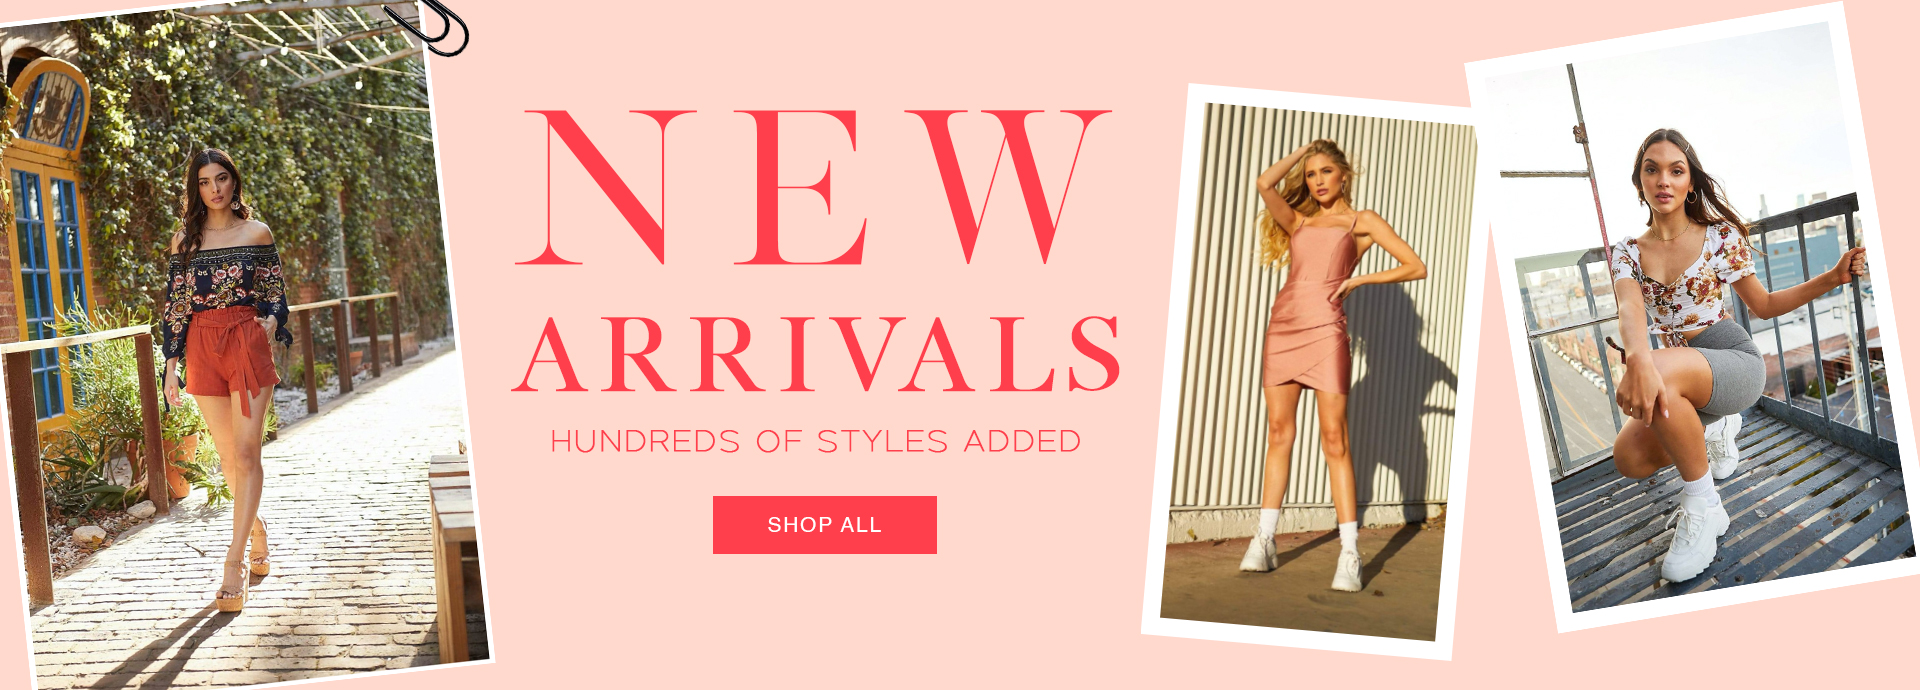 New Arrivals - hundreds of styles added